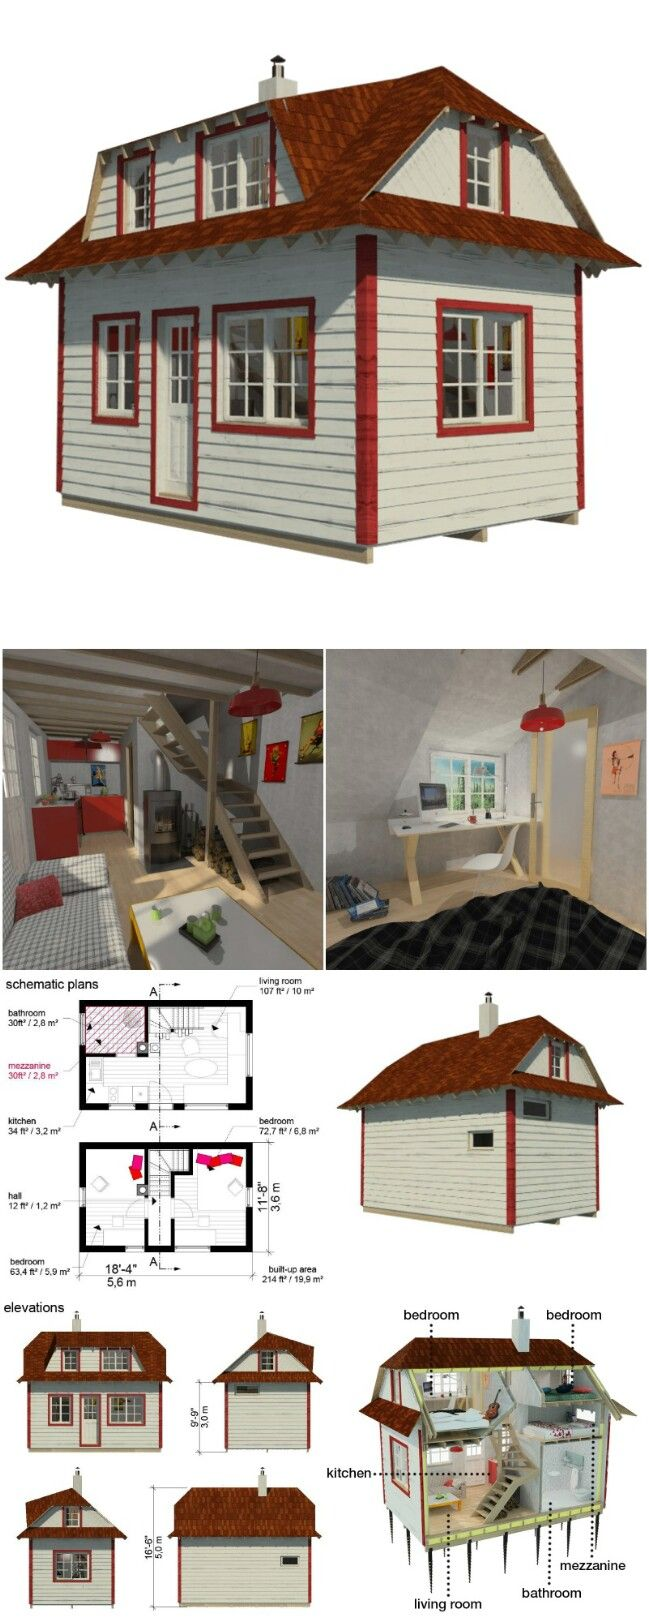 Family Tiny House Plans In 2020 Tiny House Plans Small House Plans House Plans